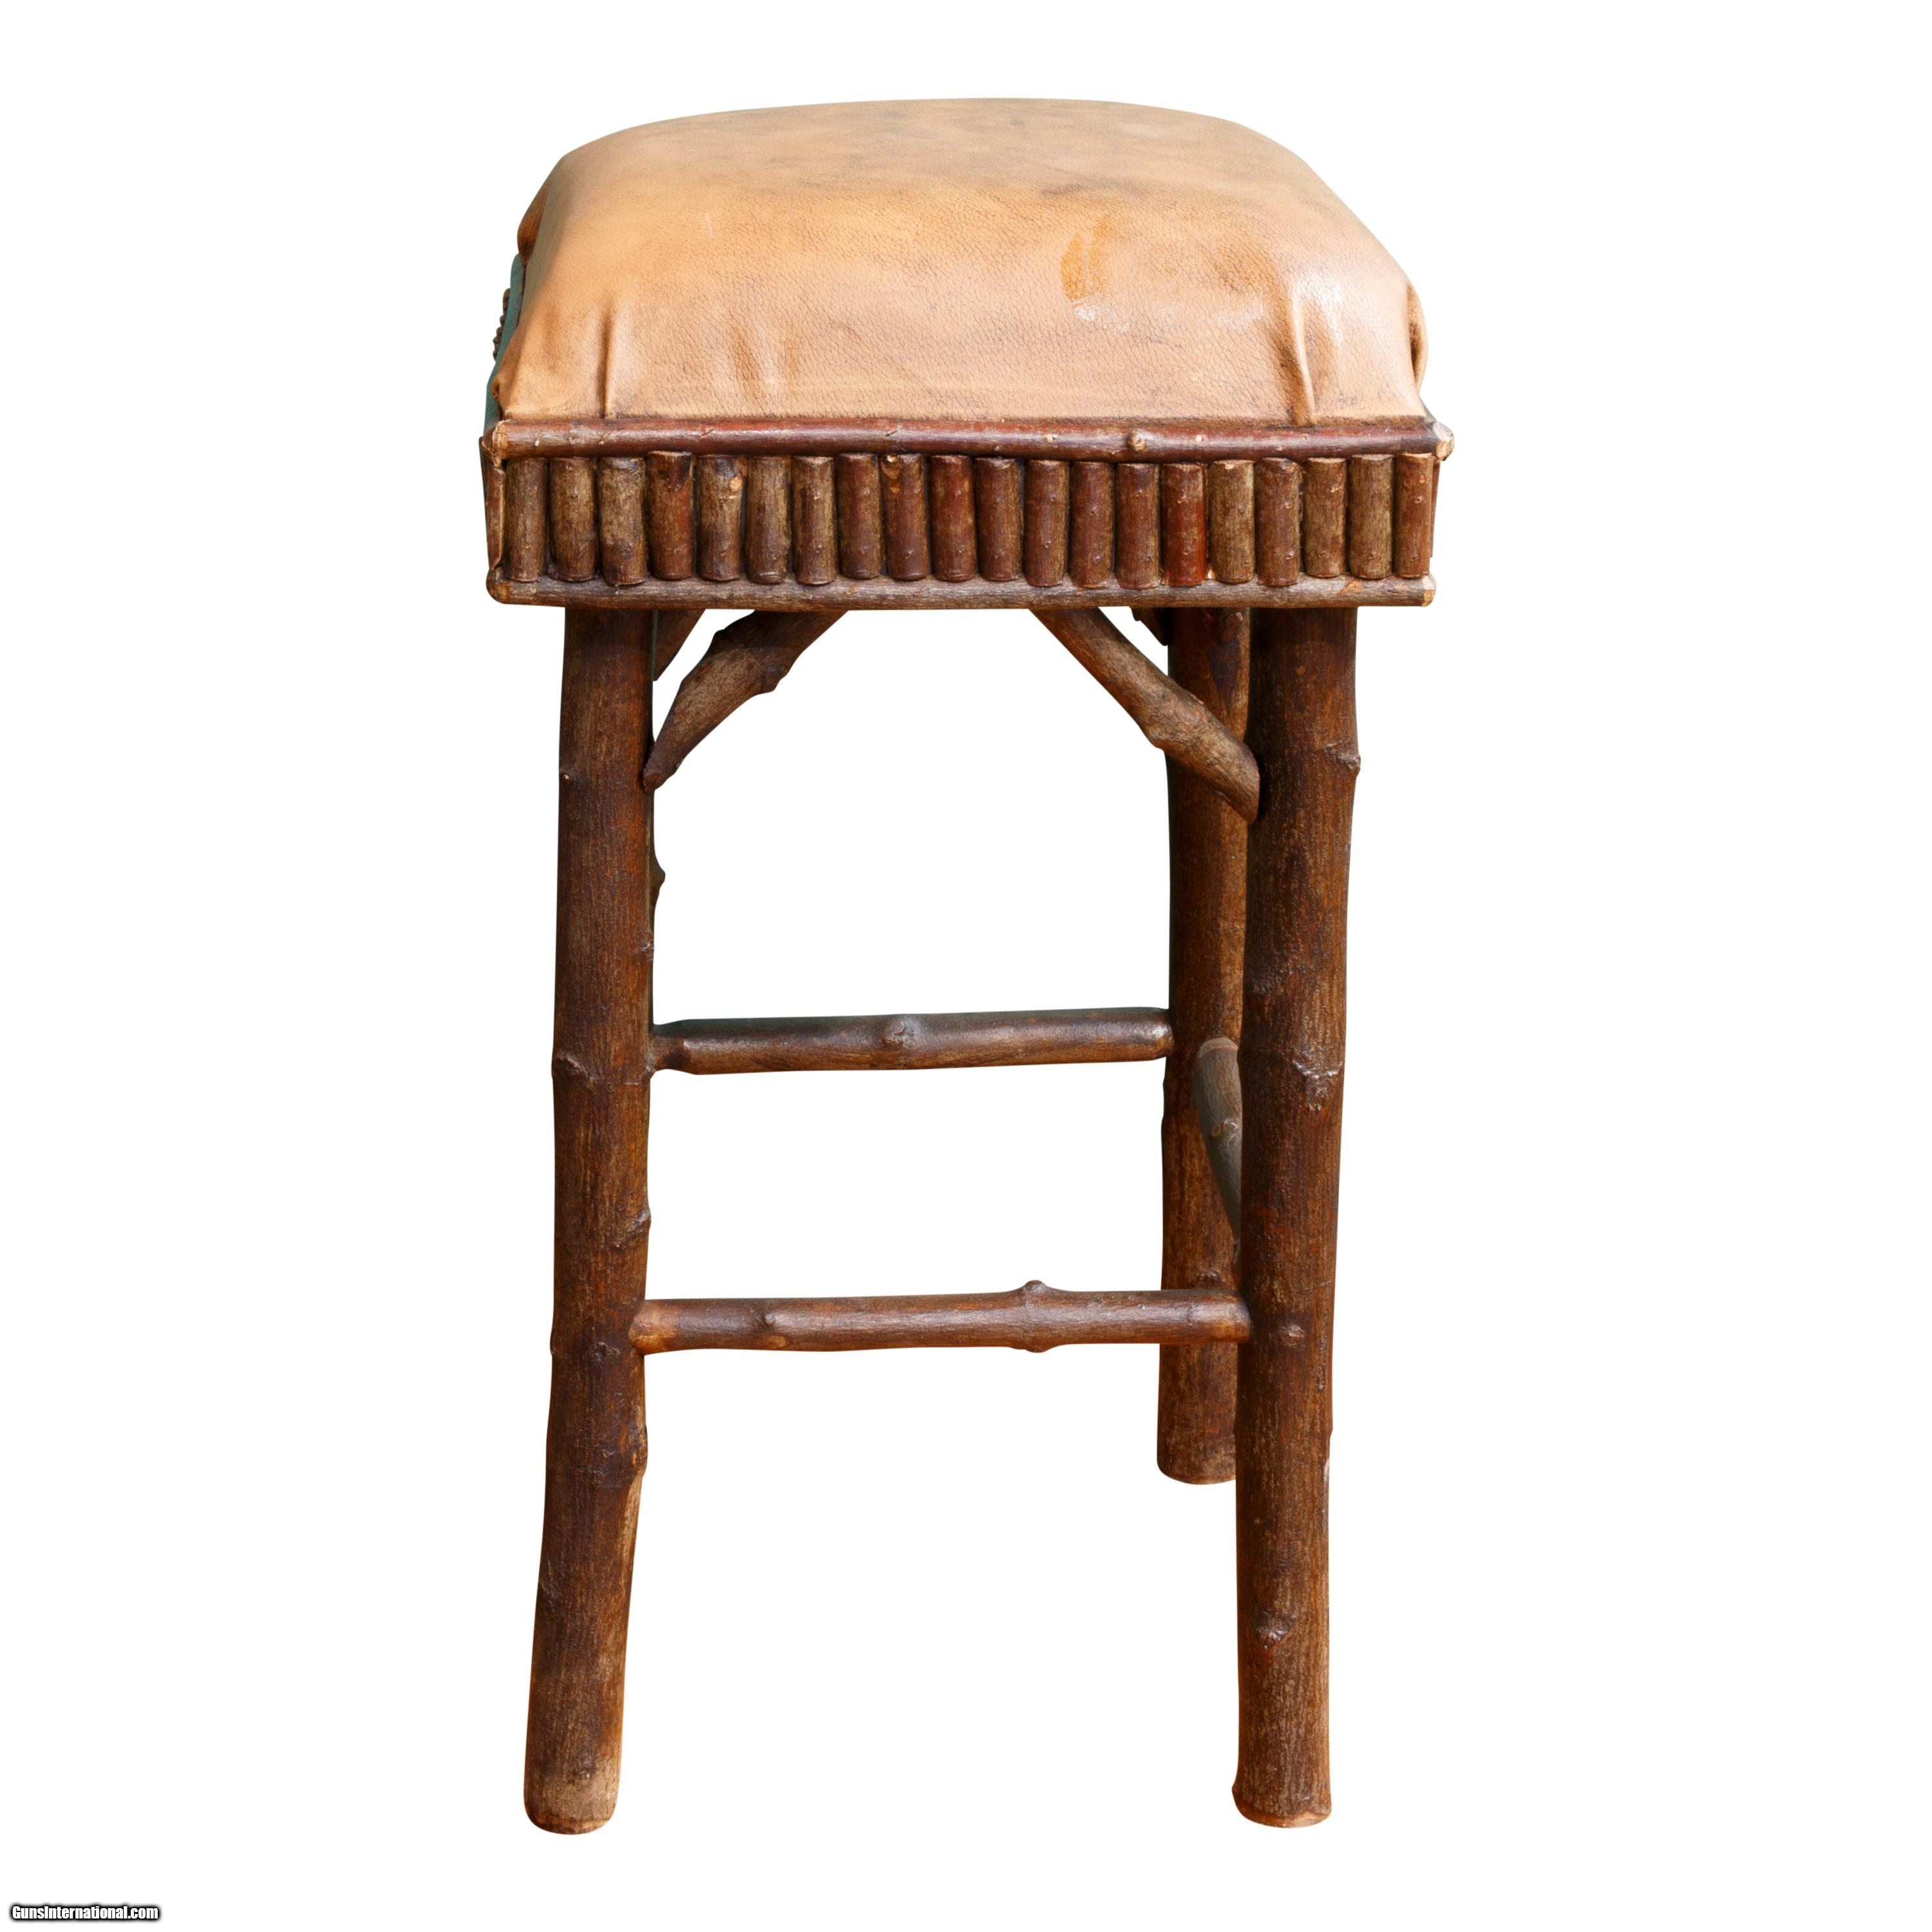 Popular Chairs Chairs Ebay Game Table Adirondack Game Table Chairs Game Table Chairs Adirondack Game Table houzz 01 Game Table And Chairs